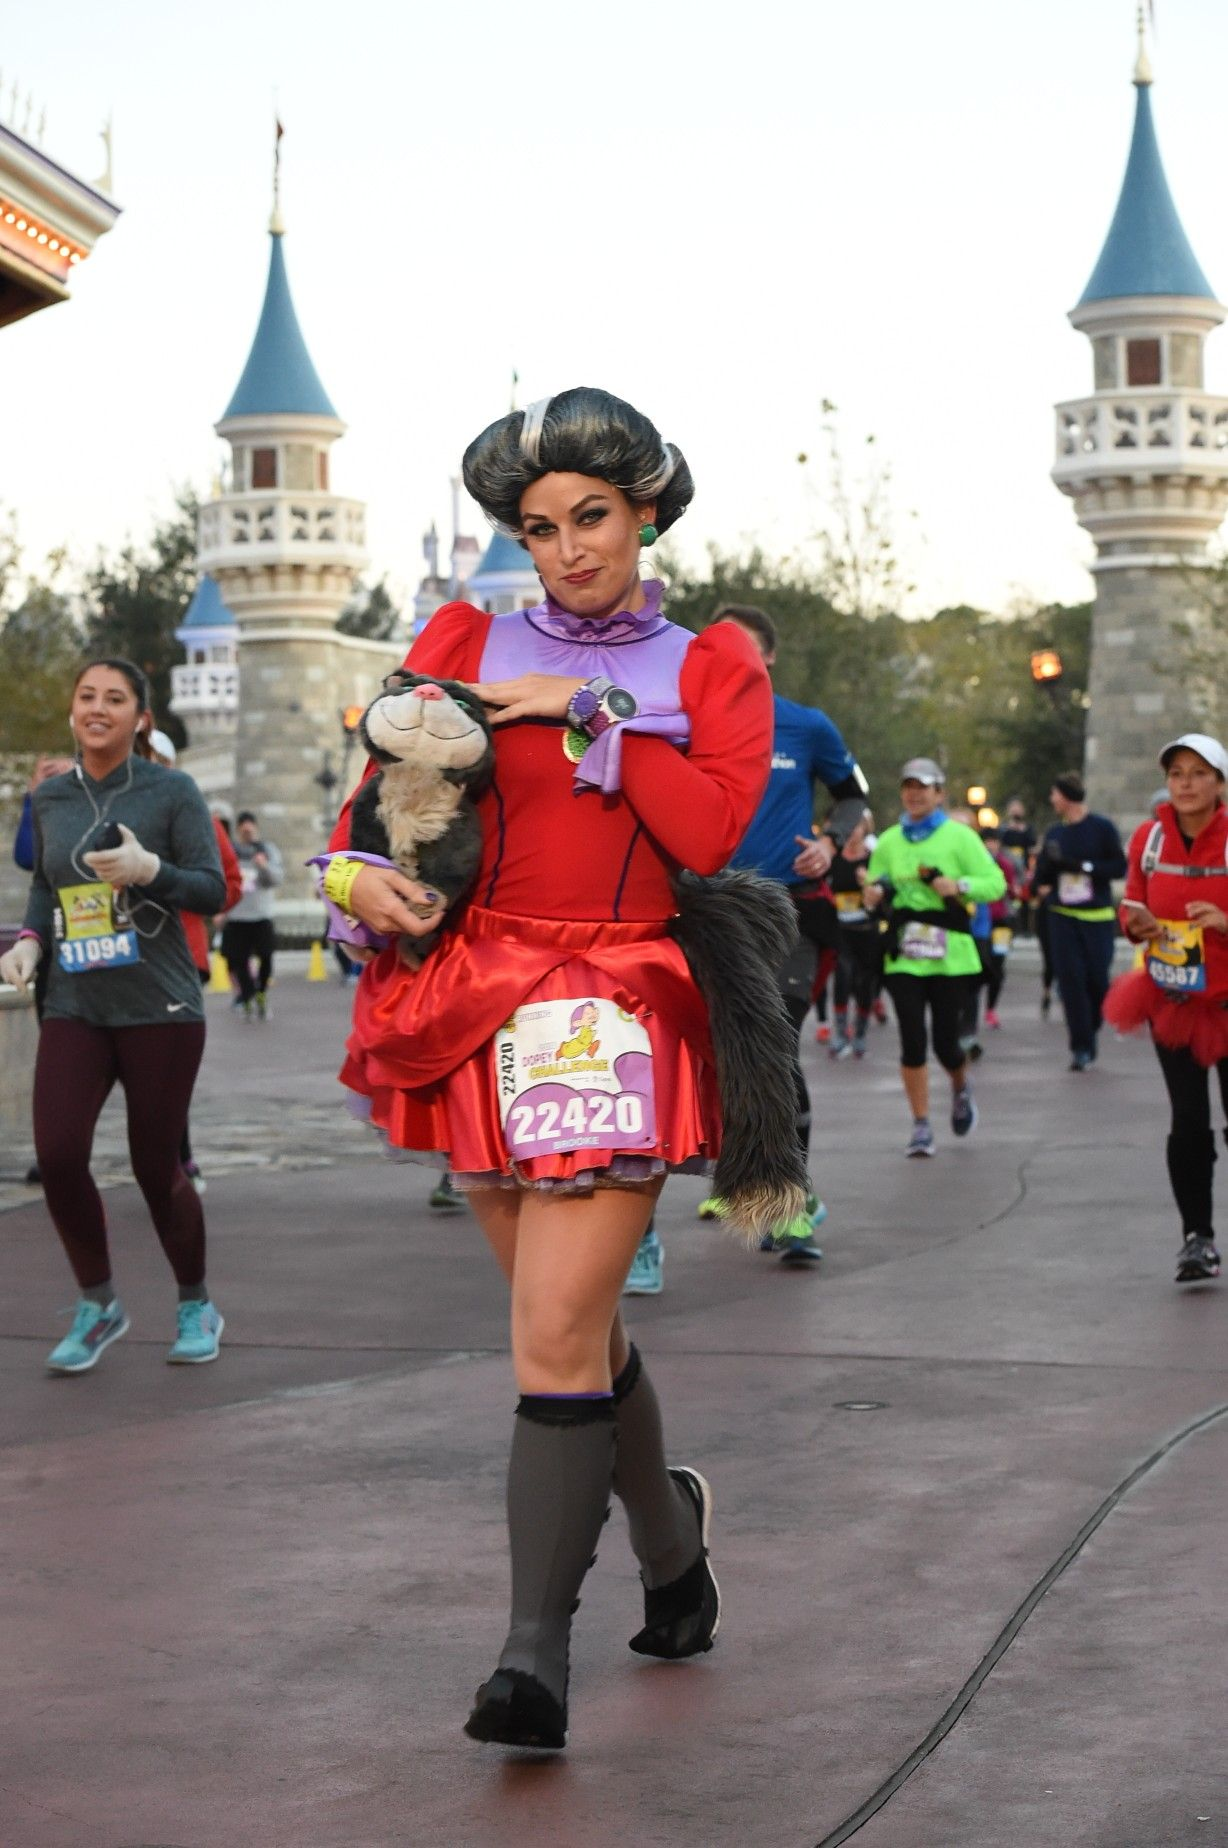 Lady Tremaine Running Costume With Lucifer Disney Running Outfits Run Disney Costumes Disney Princess Outfits